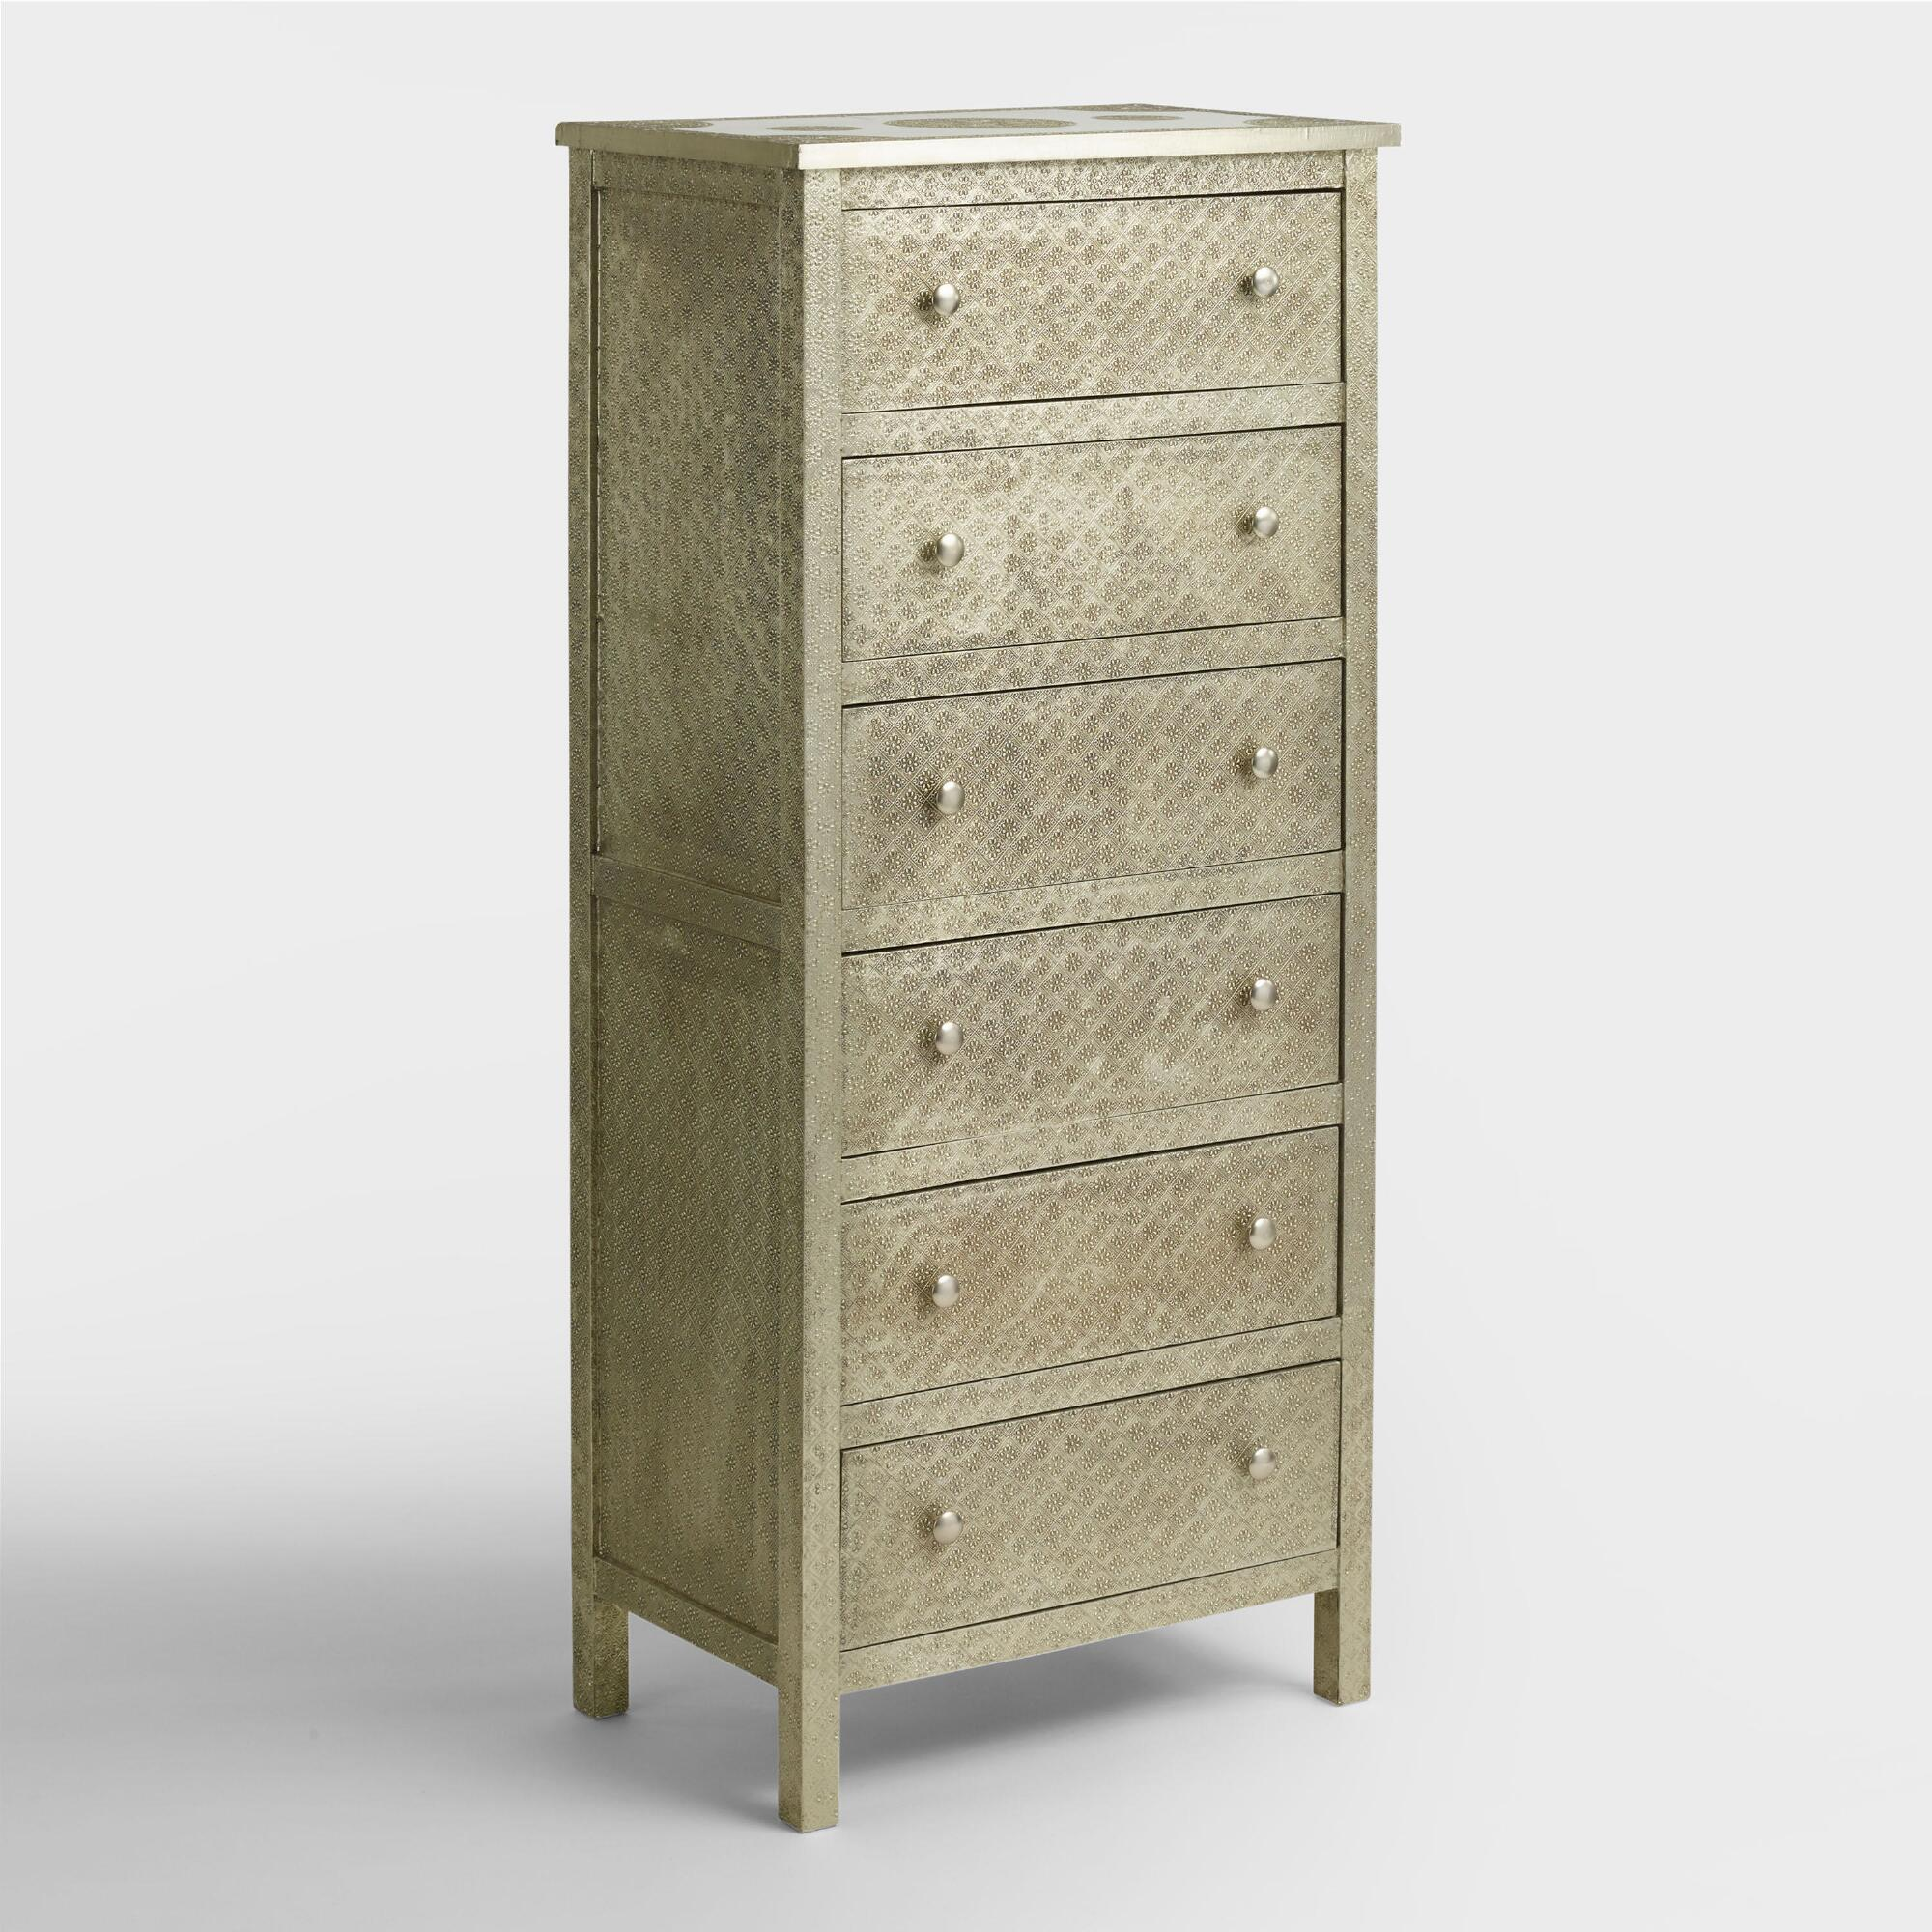 Embossed Metal Kiran Tall Dresser Dressers  Chests and Bedroom Storage World Market